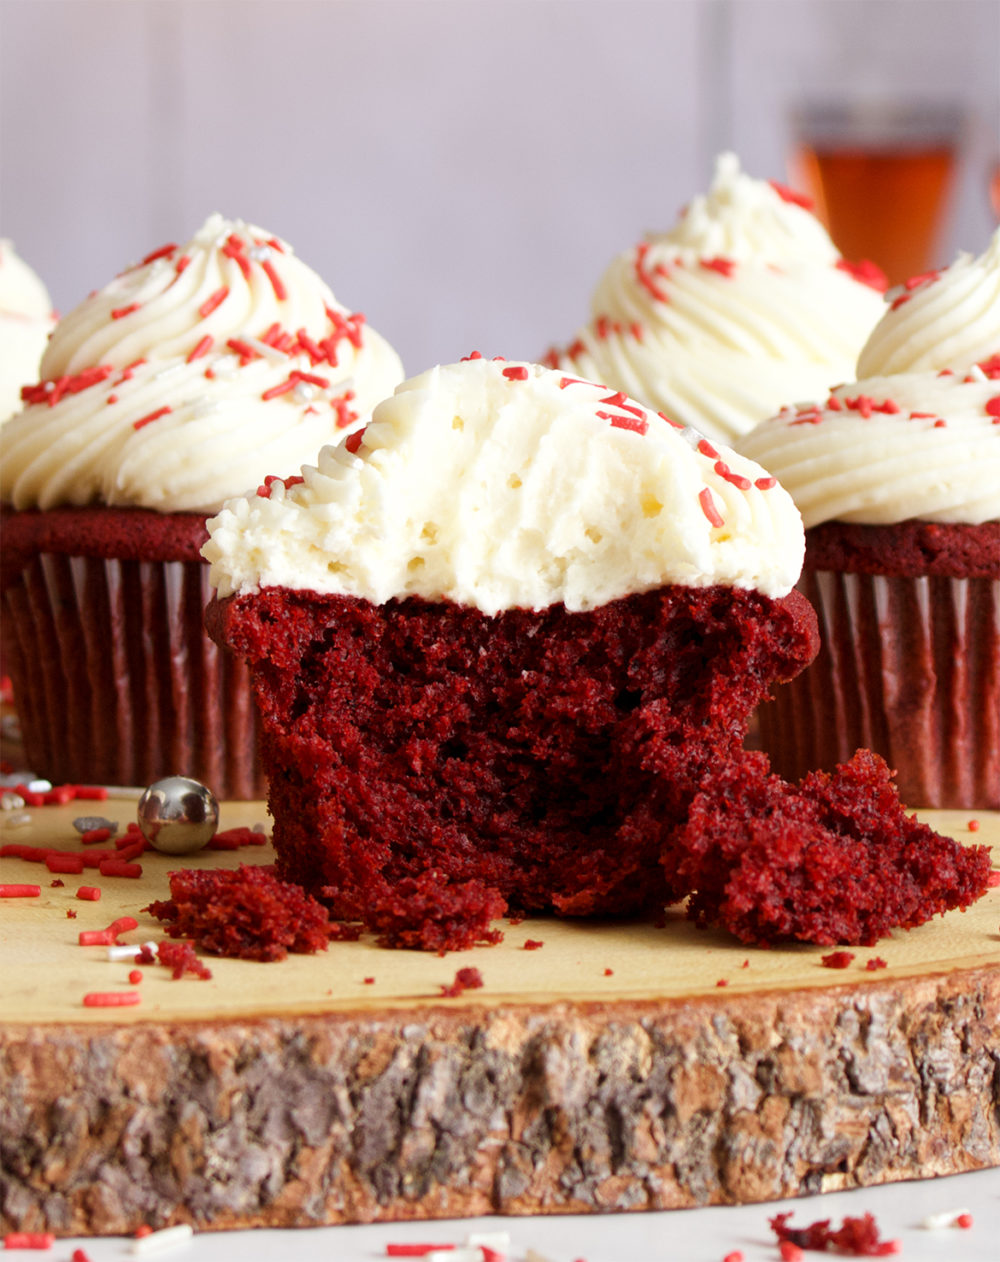 The inside of a red velvet cupcake with cream cheese buttercream.